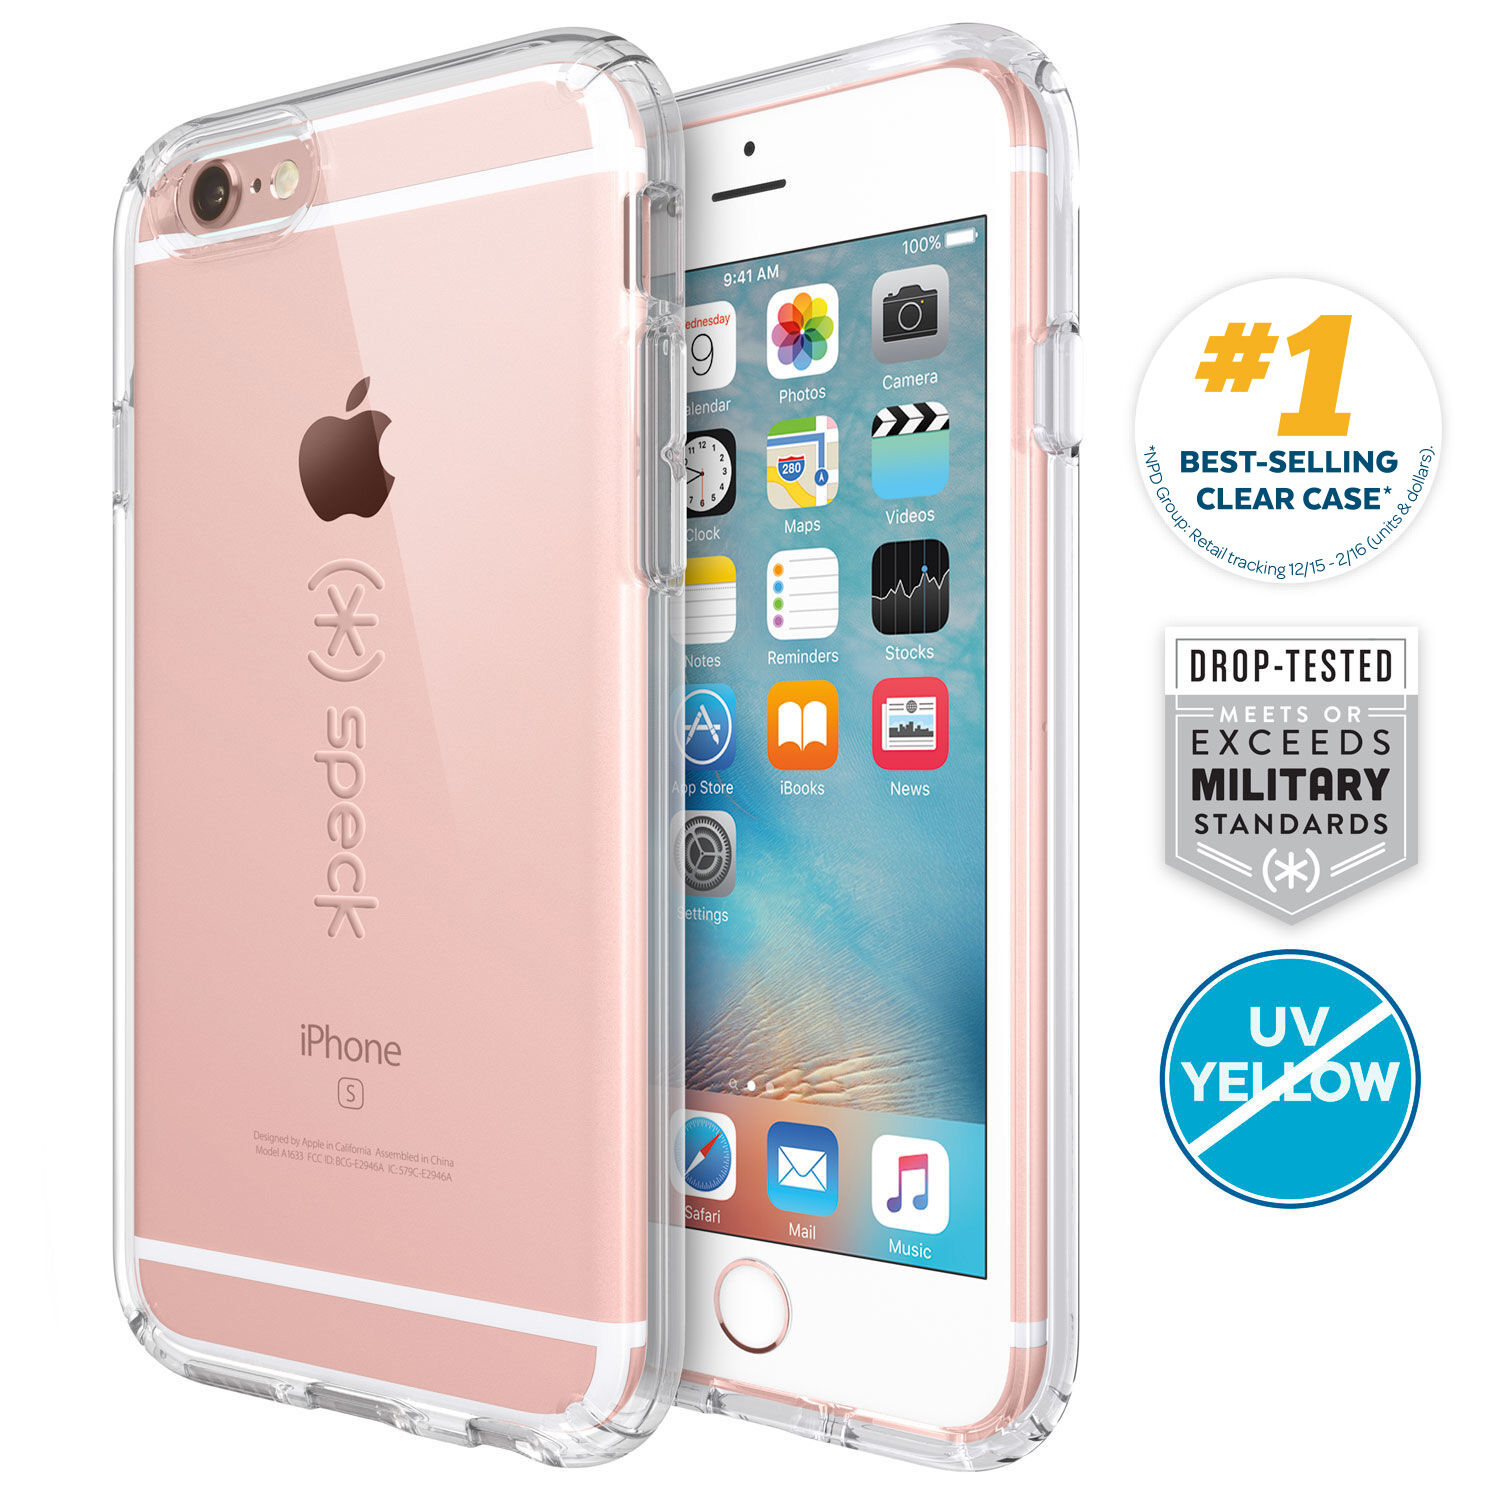 Case Für Iphone Candyshell Clear Iphone 6s Plus And Iphone 6 Plus Cases